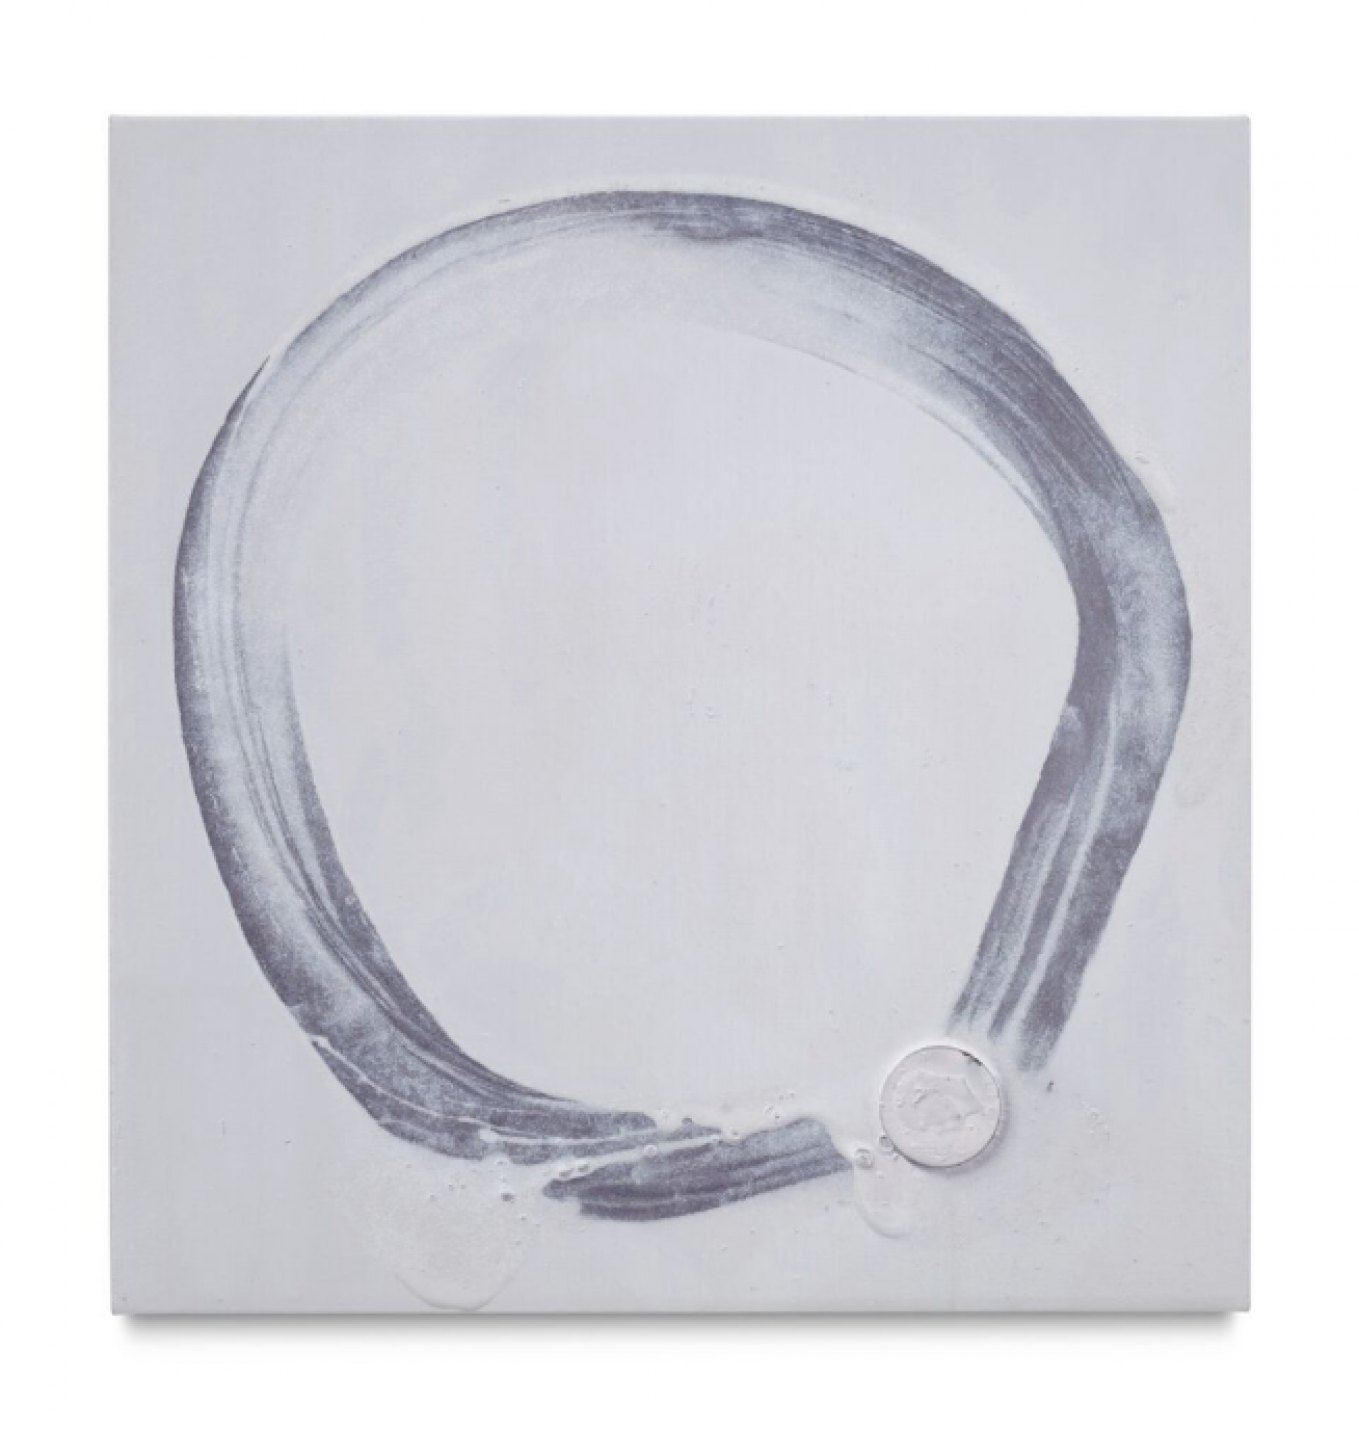 Paul Sietsema, <em>Circle painting</em>, 2016, enamel on linen, 77 × 73 cm - Mendes Wood DM